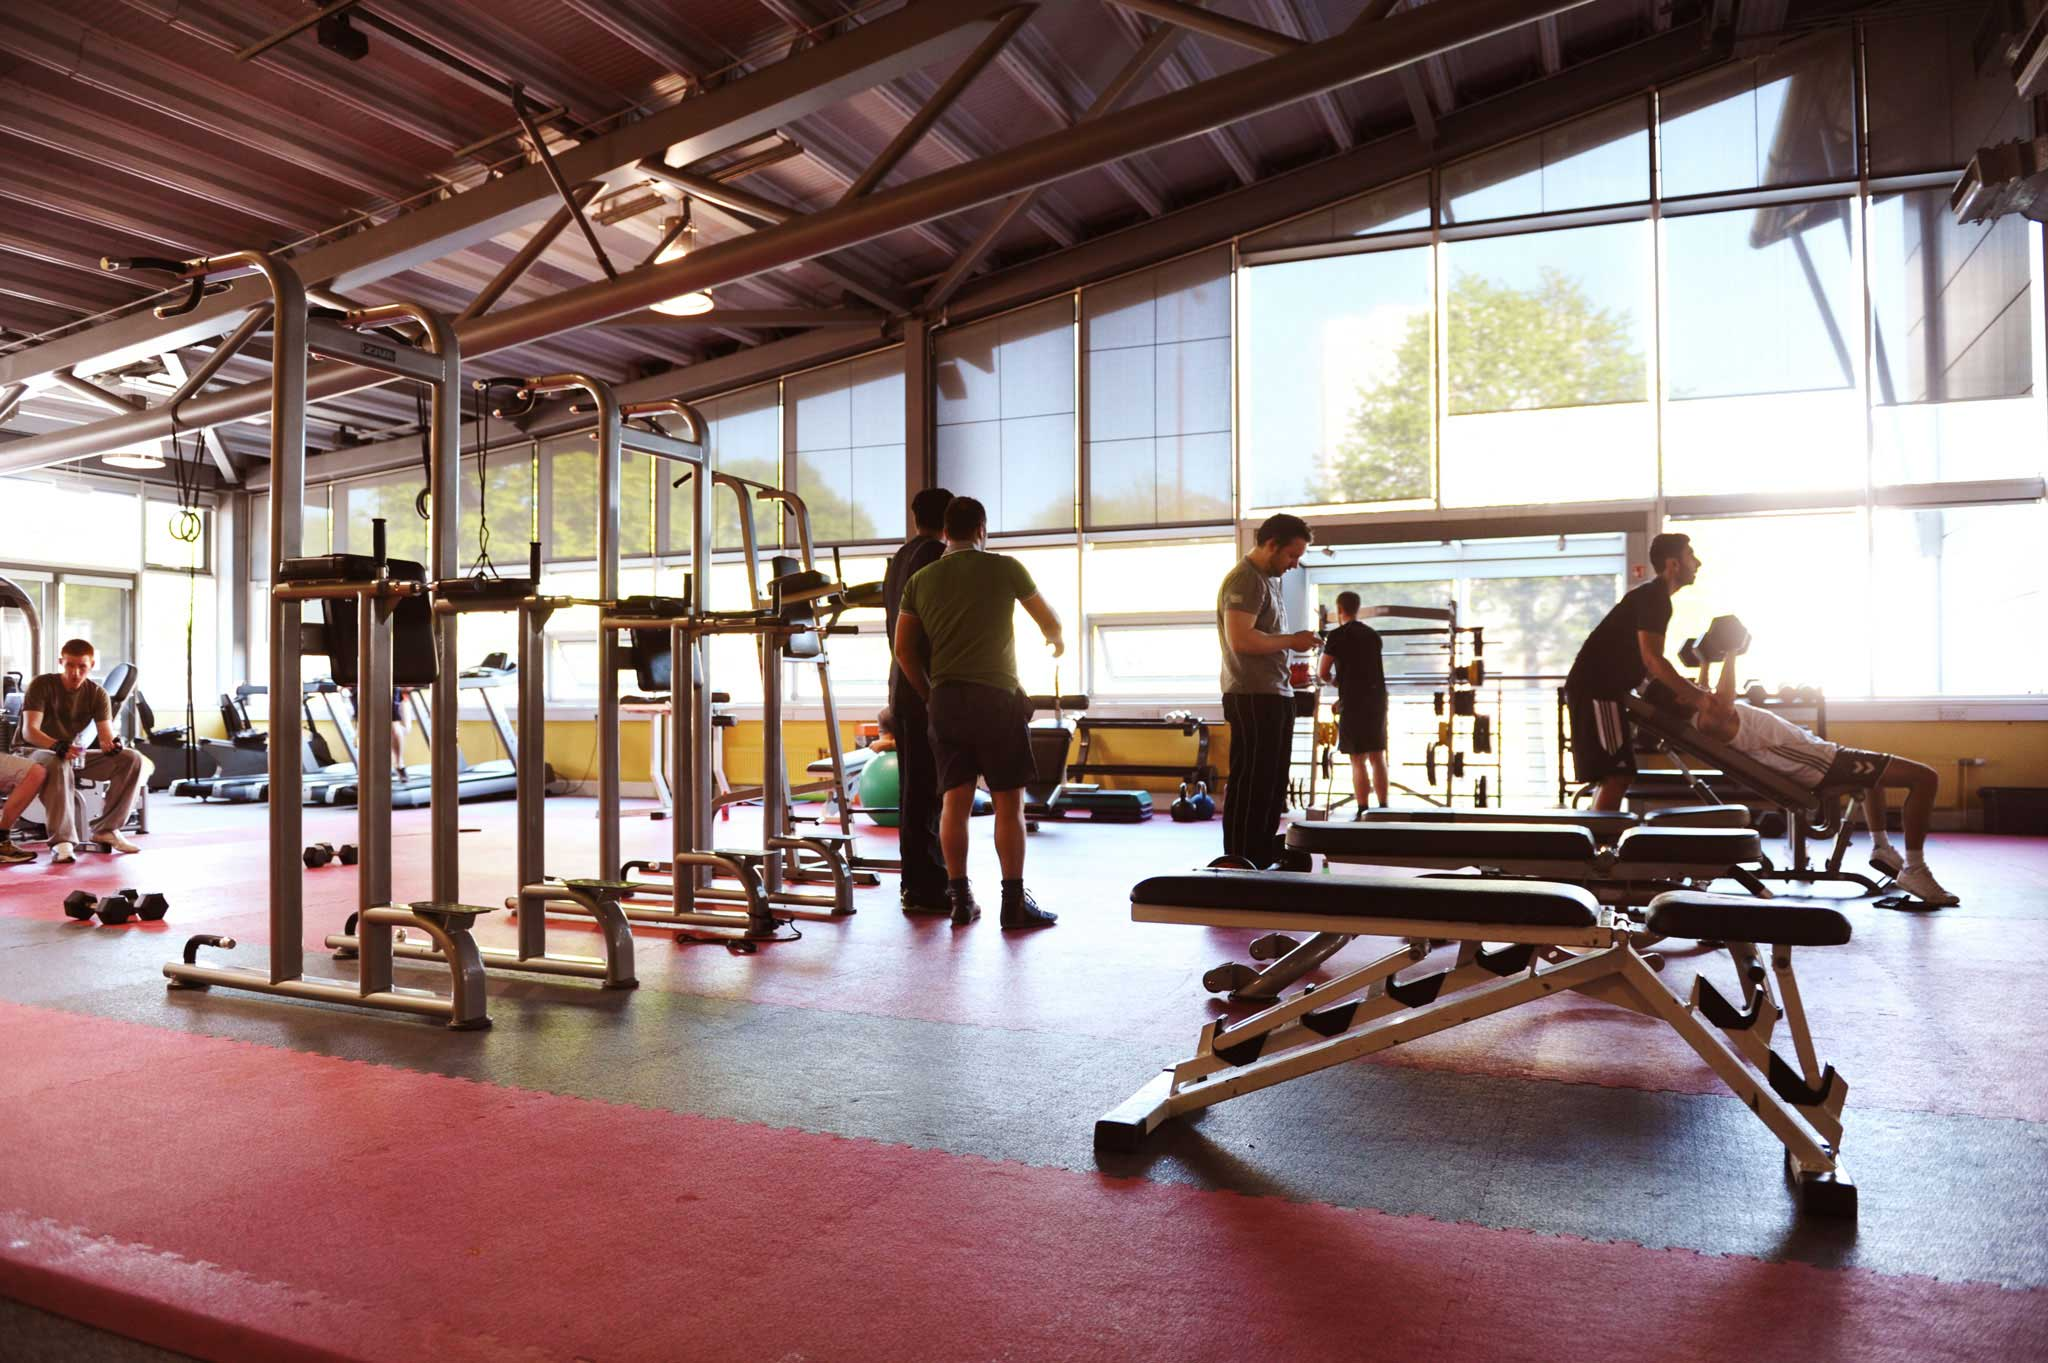 Gym facilities available for all students